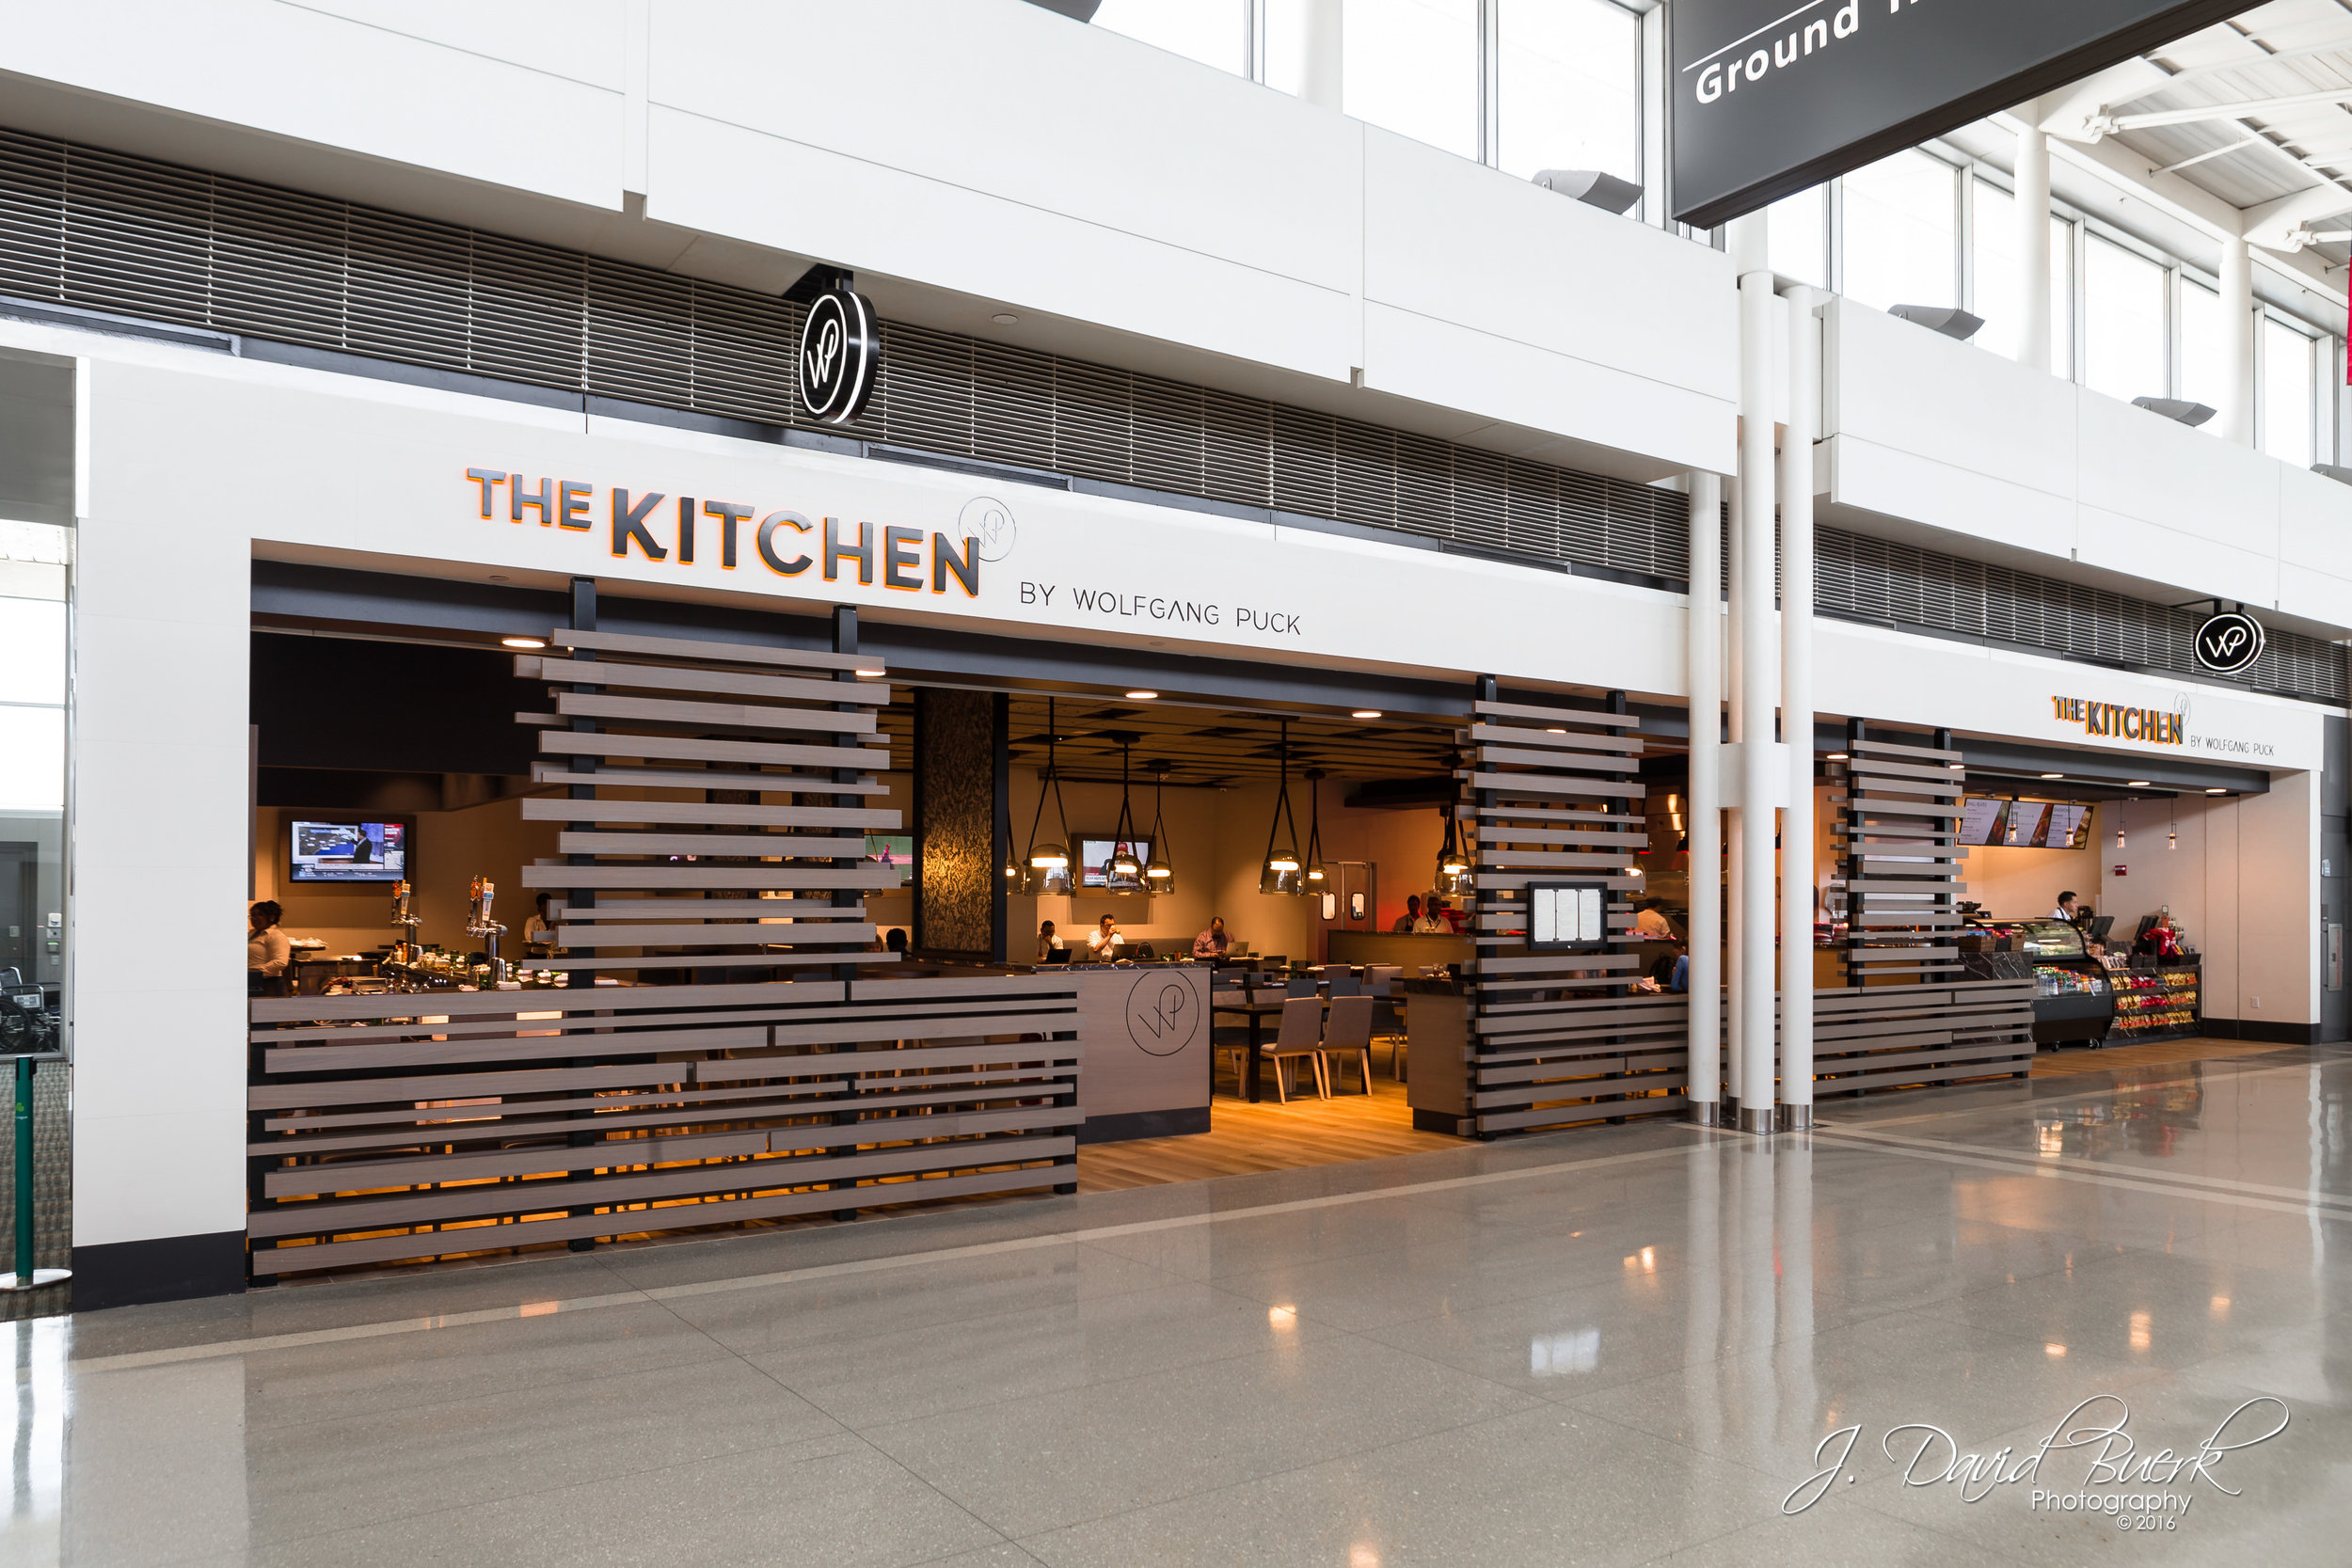 The Kitchen by Wolfgang Puck; a new restaurant offering at Washington Dulles International Airport.  Much of my work, many of which goes undisplayed on my website, is photographing commercial marketing imagery of concessions and products for the DC area's two airports.